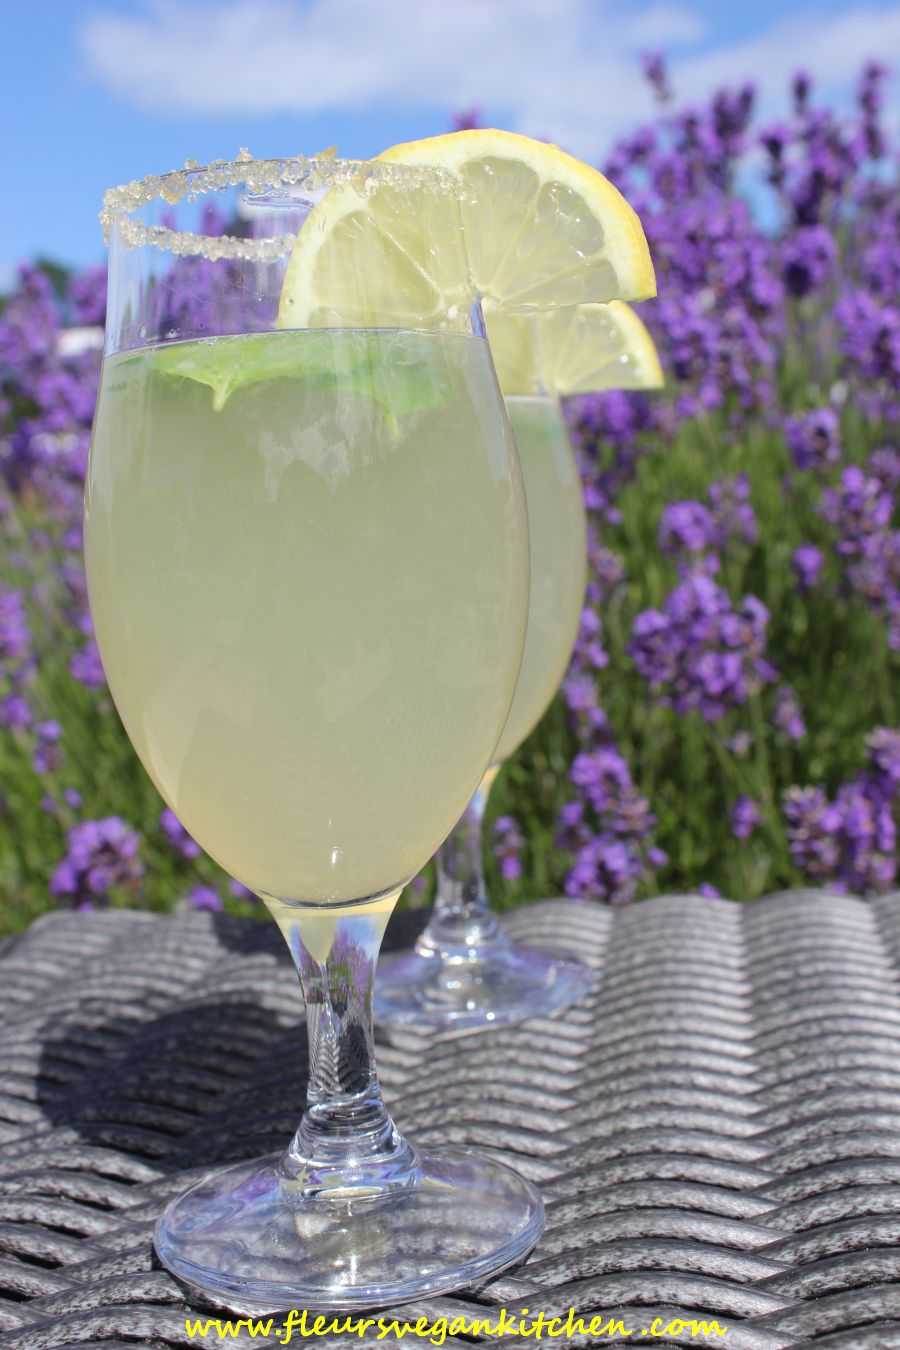 (English) Mint lemonade